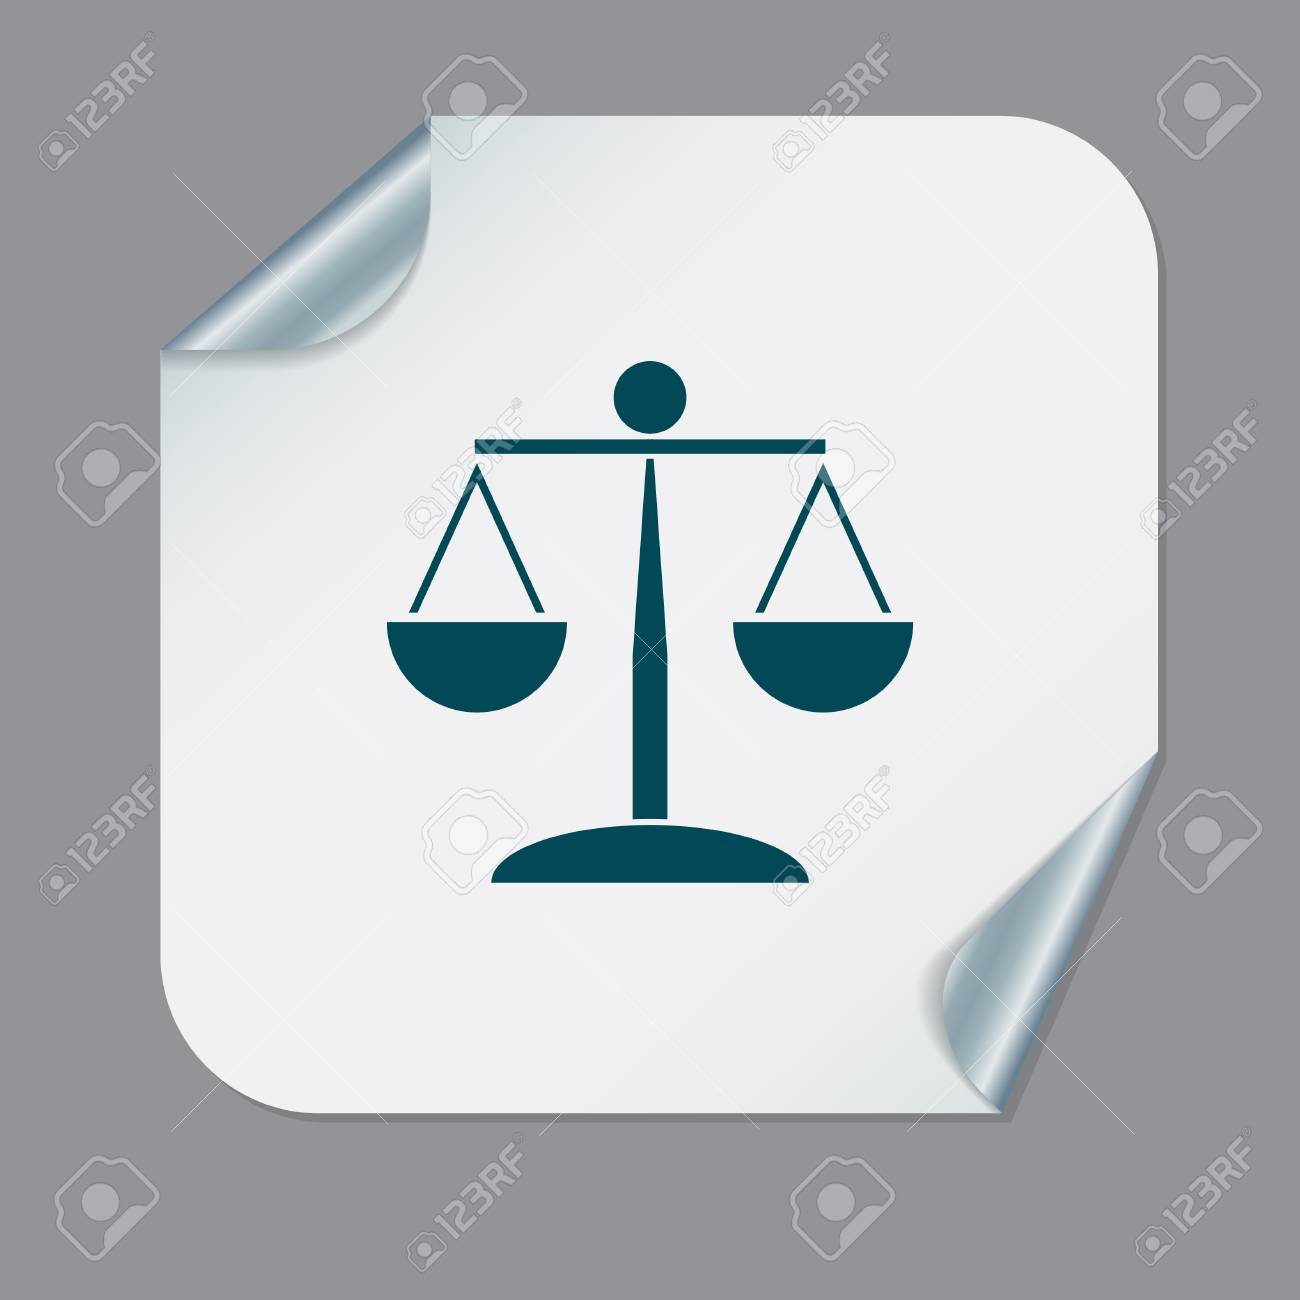 Scales Of Justice Icon Symbol Of Justice Royalty Free Cliparts